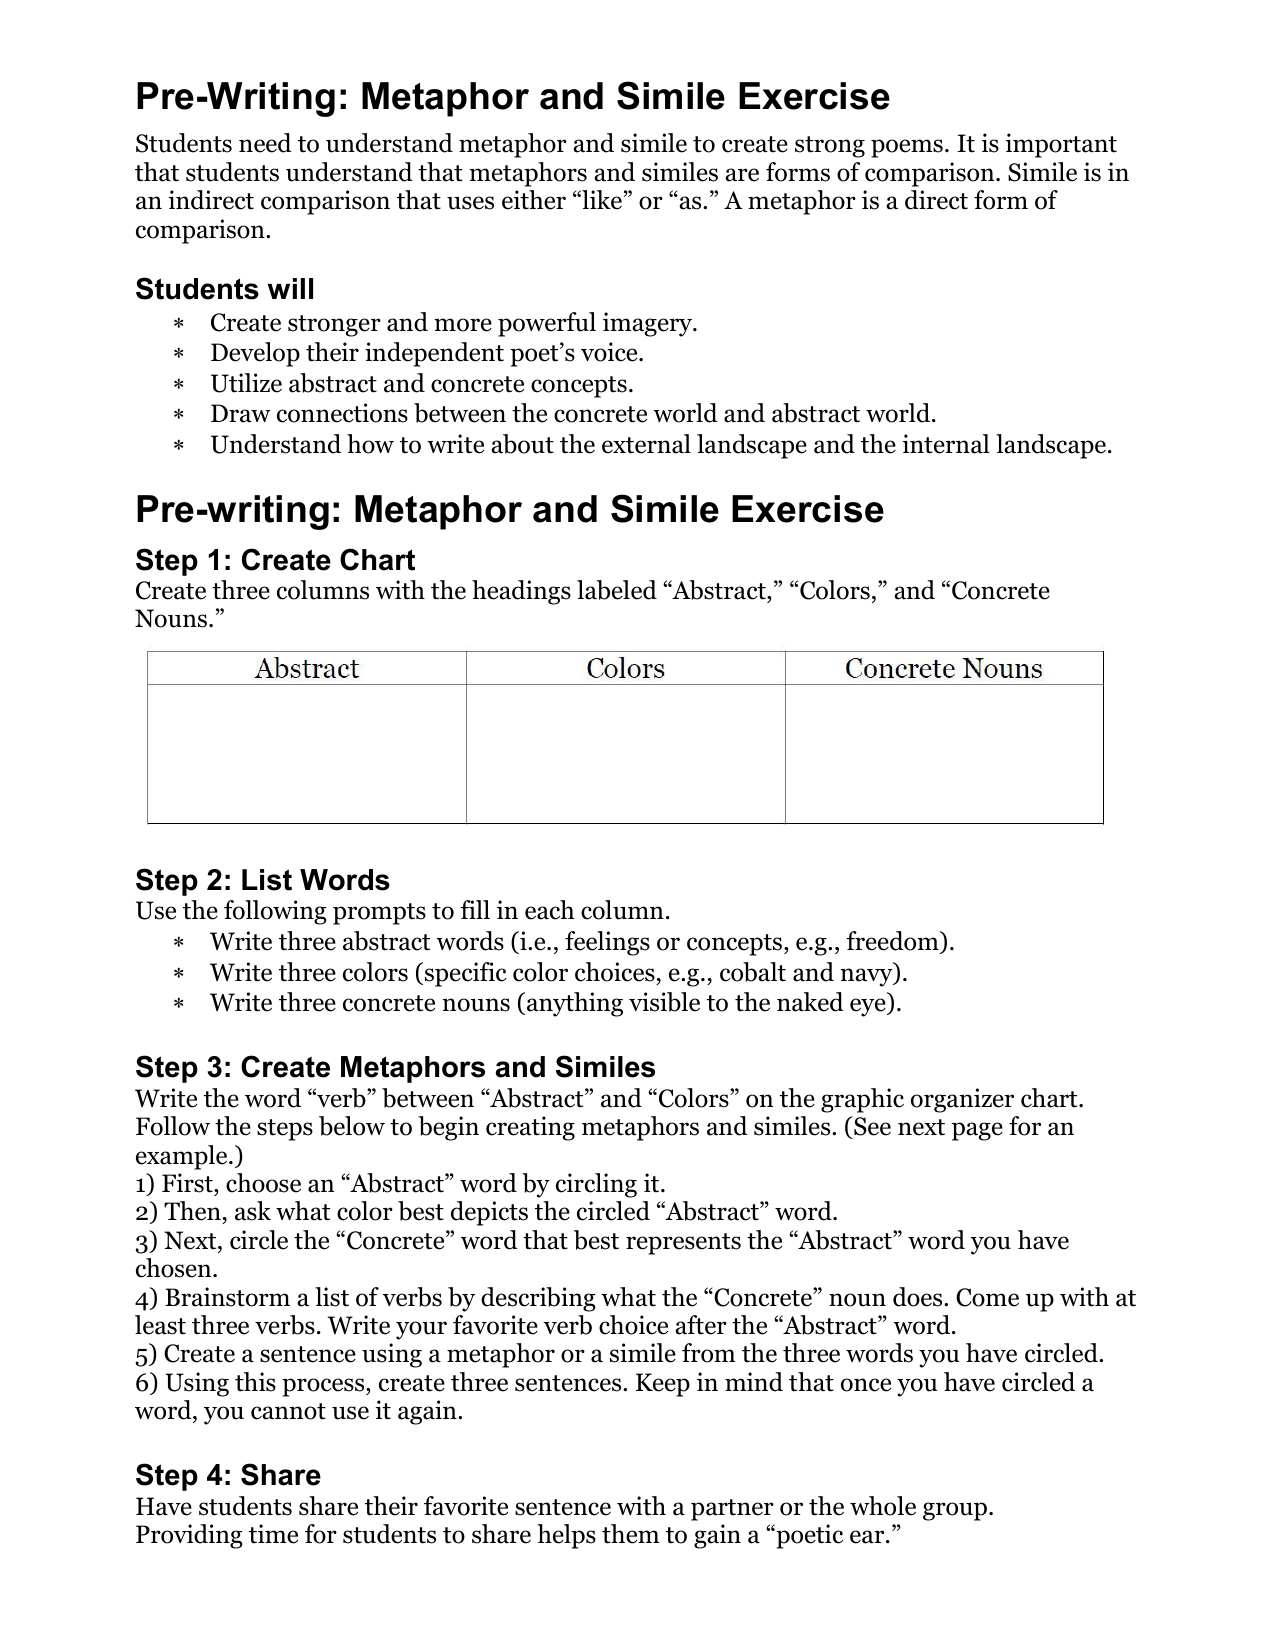 Pre-Writing: Metaphor and Simile Exercise